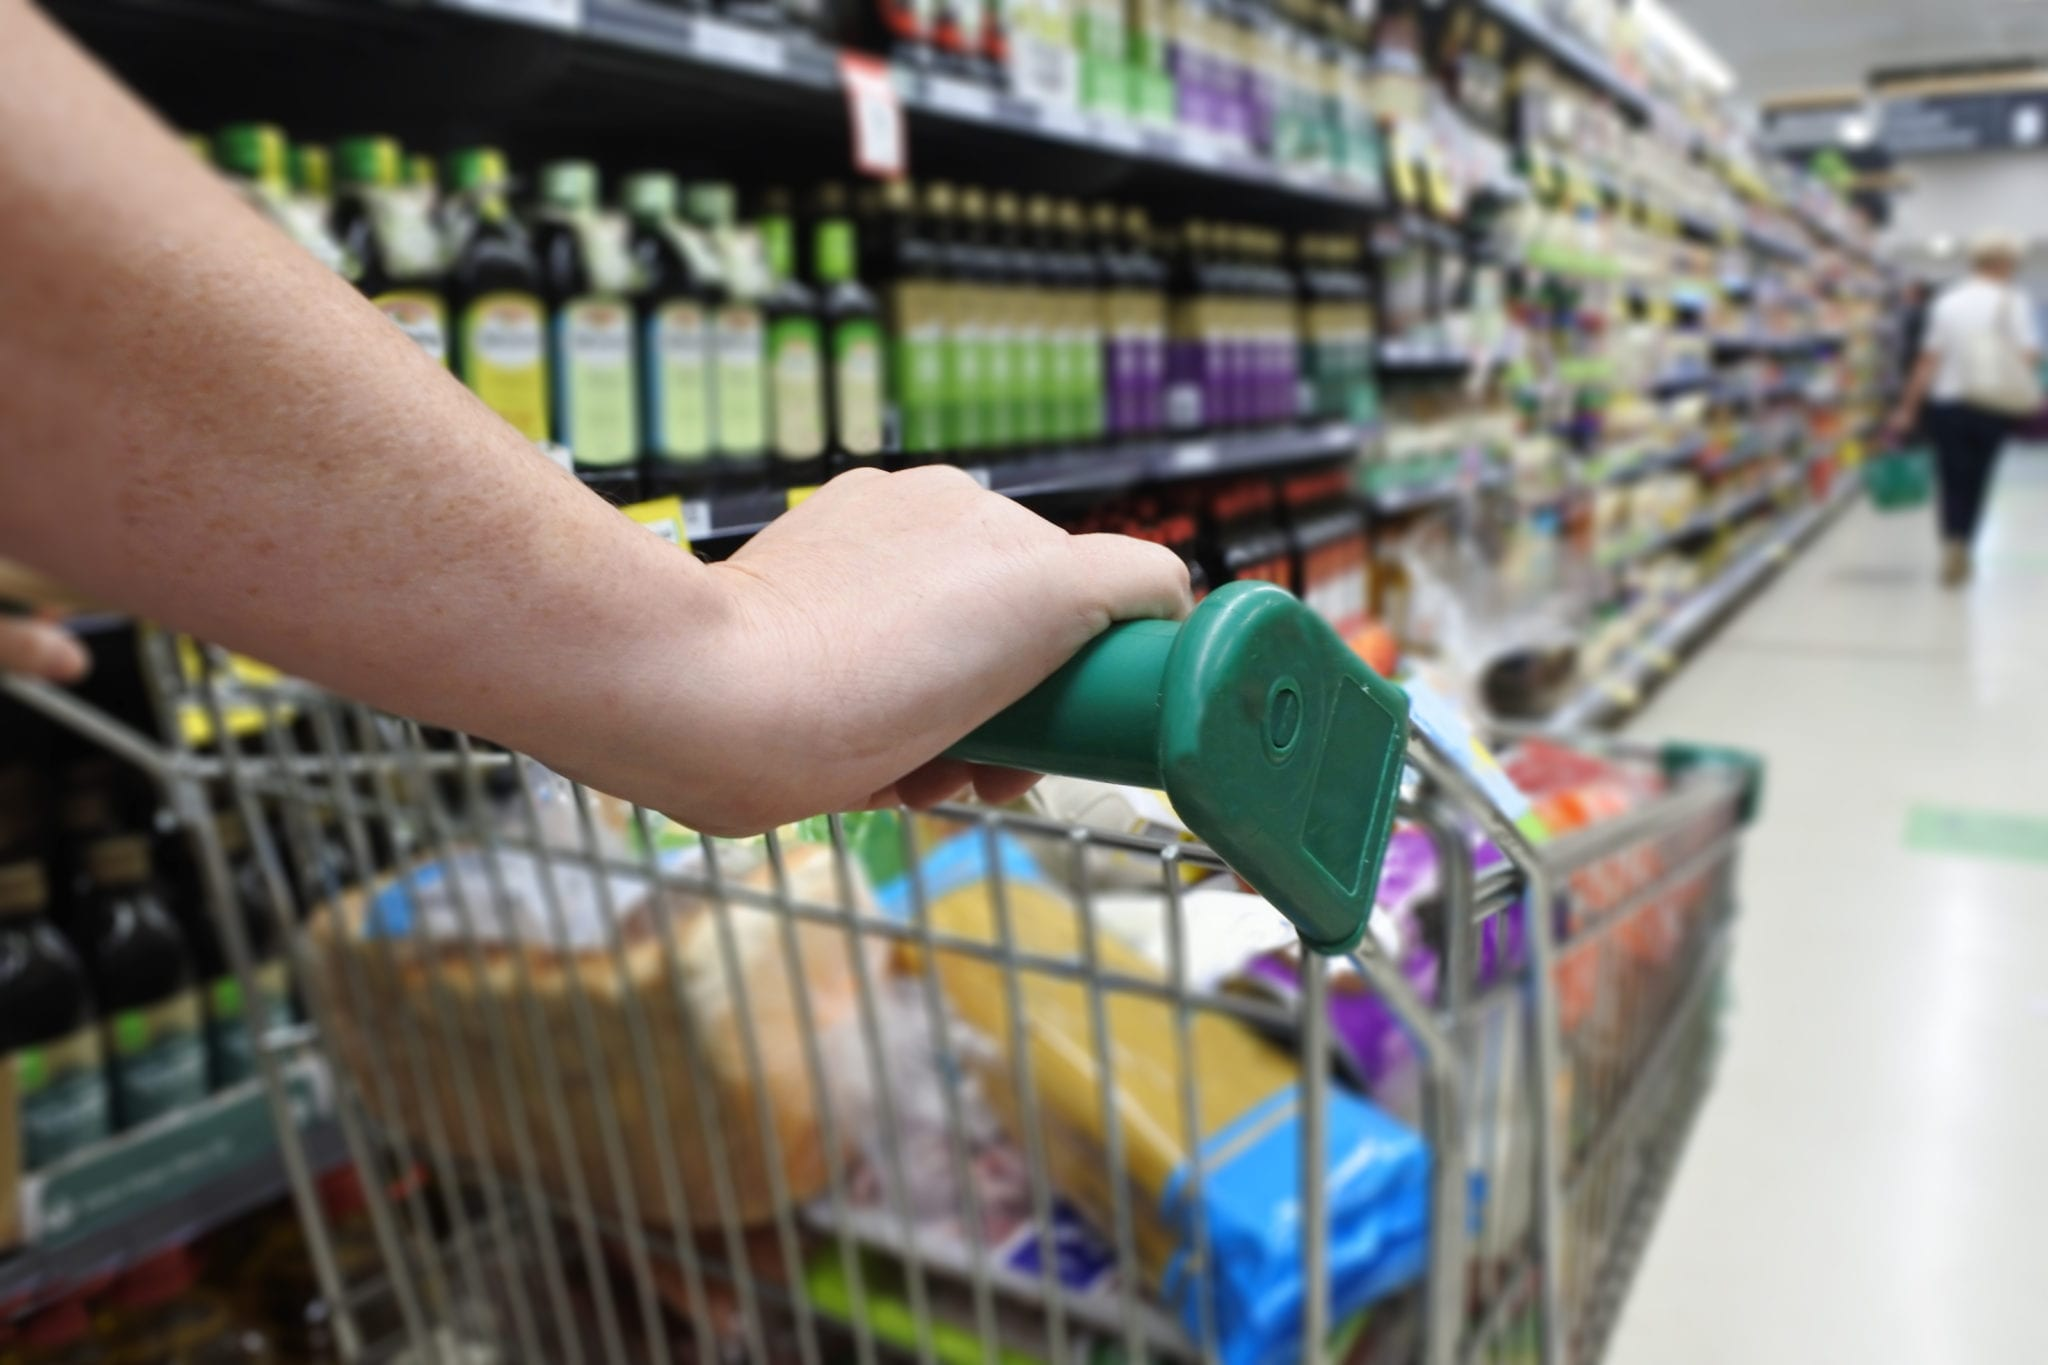 Australia's Grocery Retailers and Vendors Automate with EDI